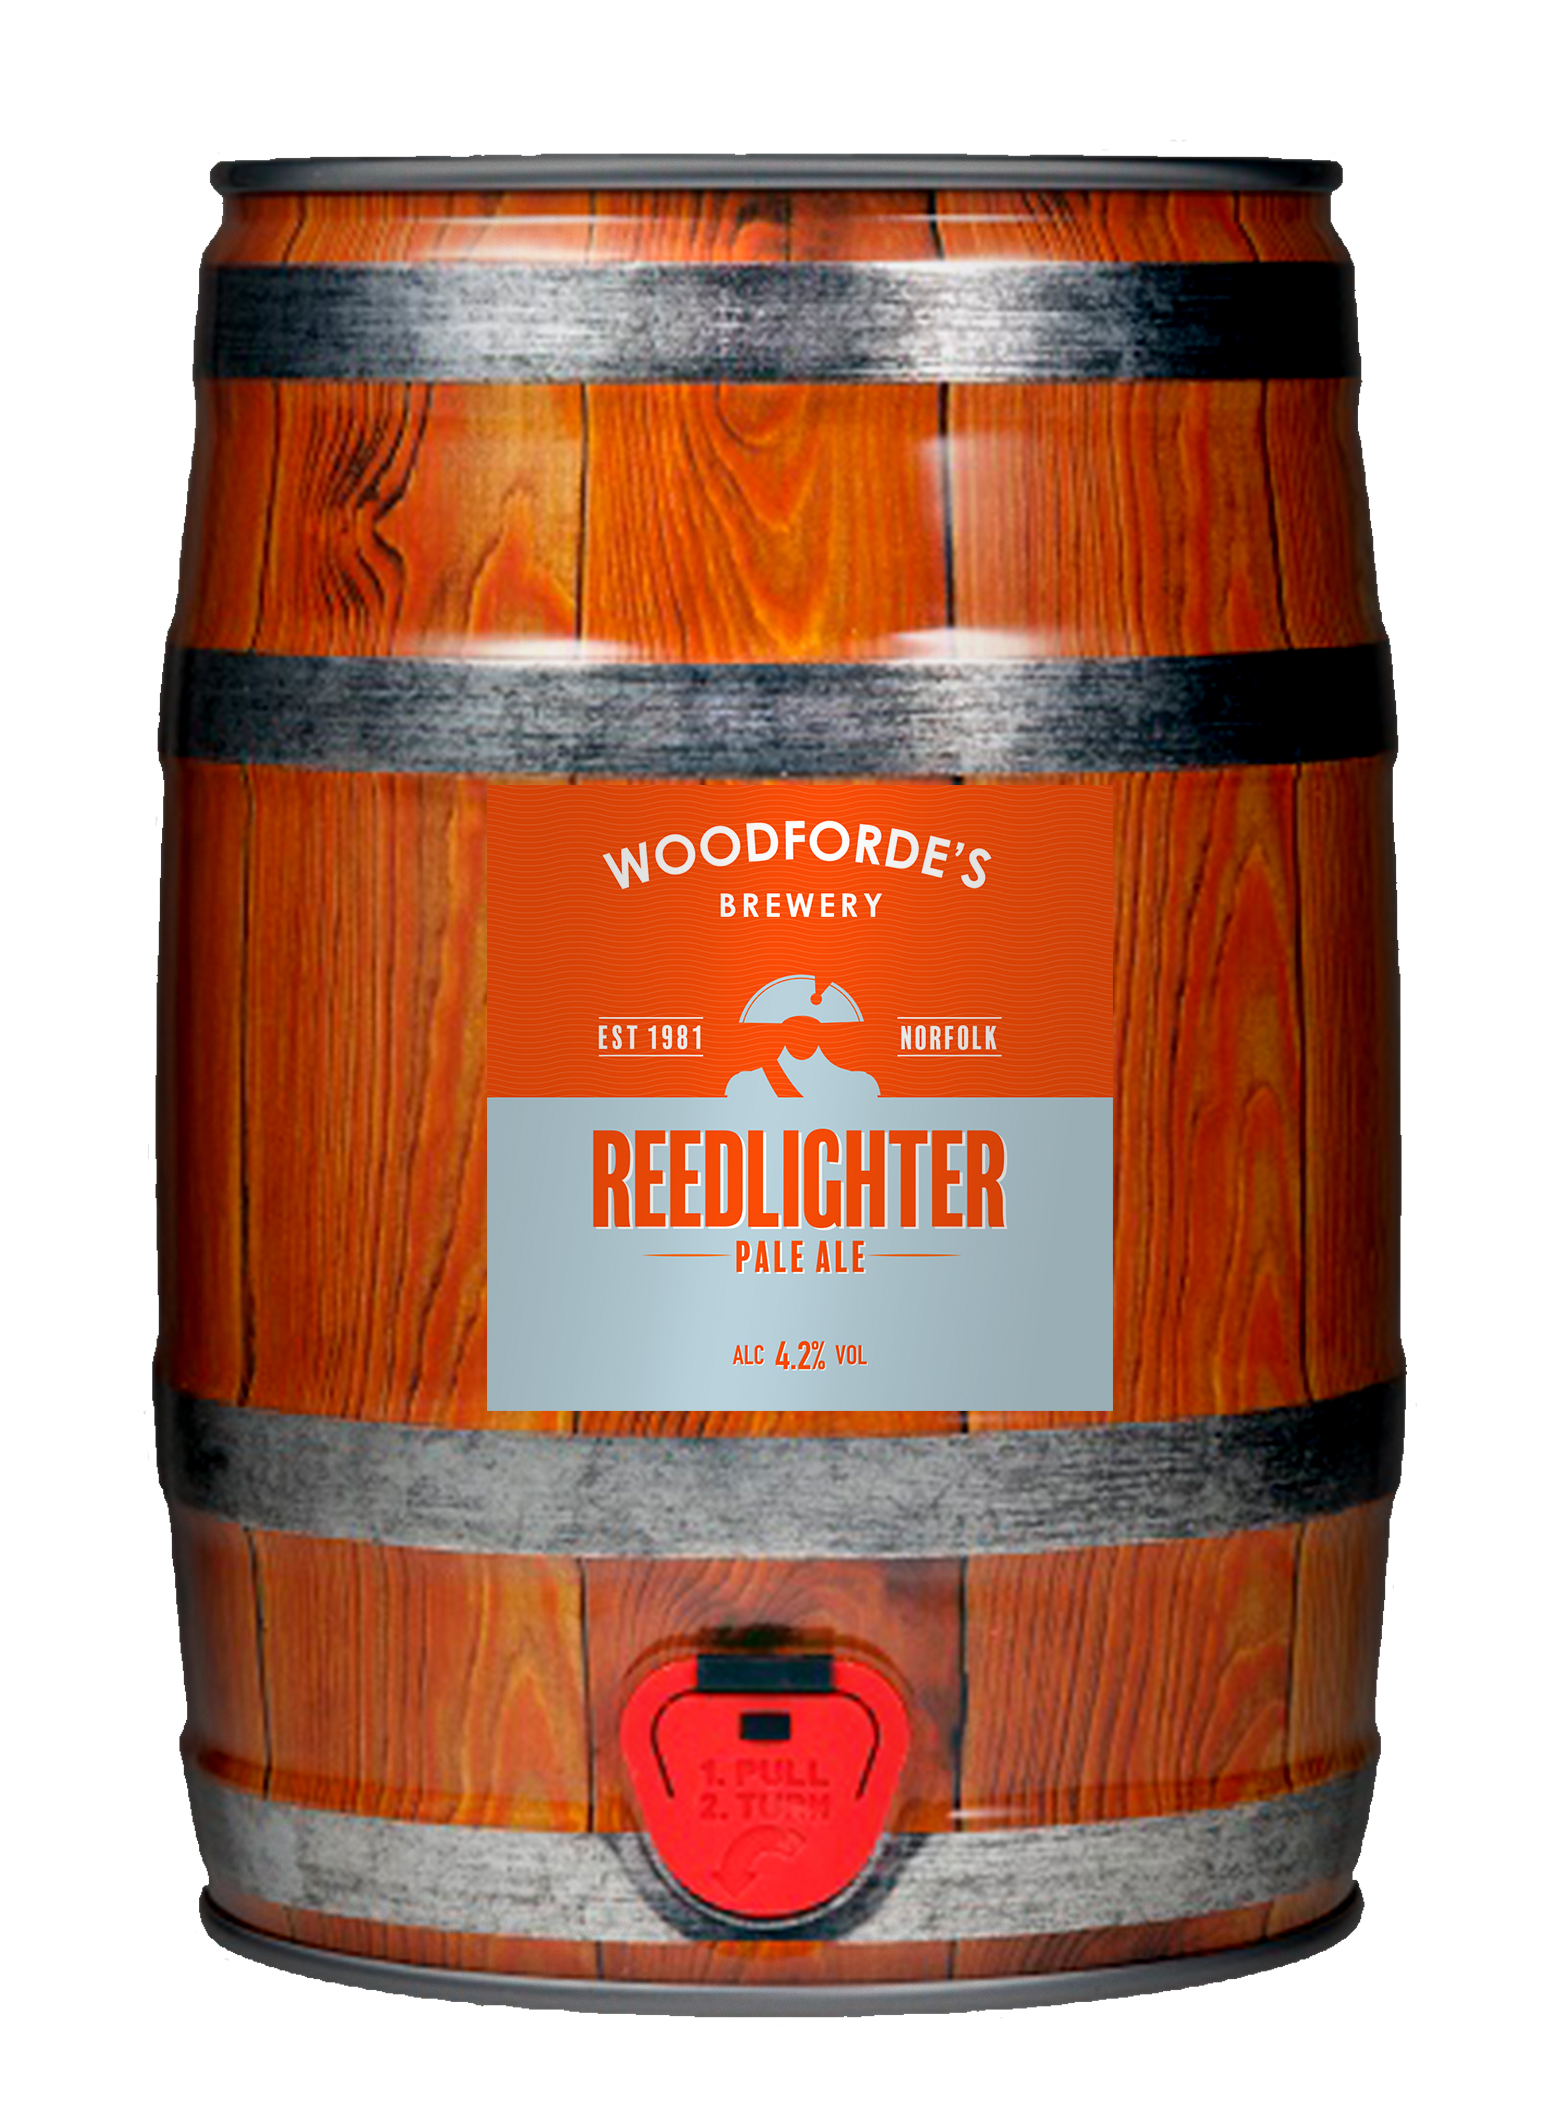 Woodforde's Brewery, Redlighter Pale Ale Mini Cask, ú17.99 at www.woodfordes.co.uk copy